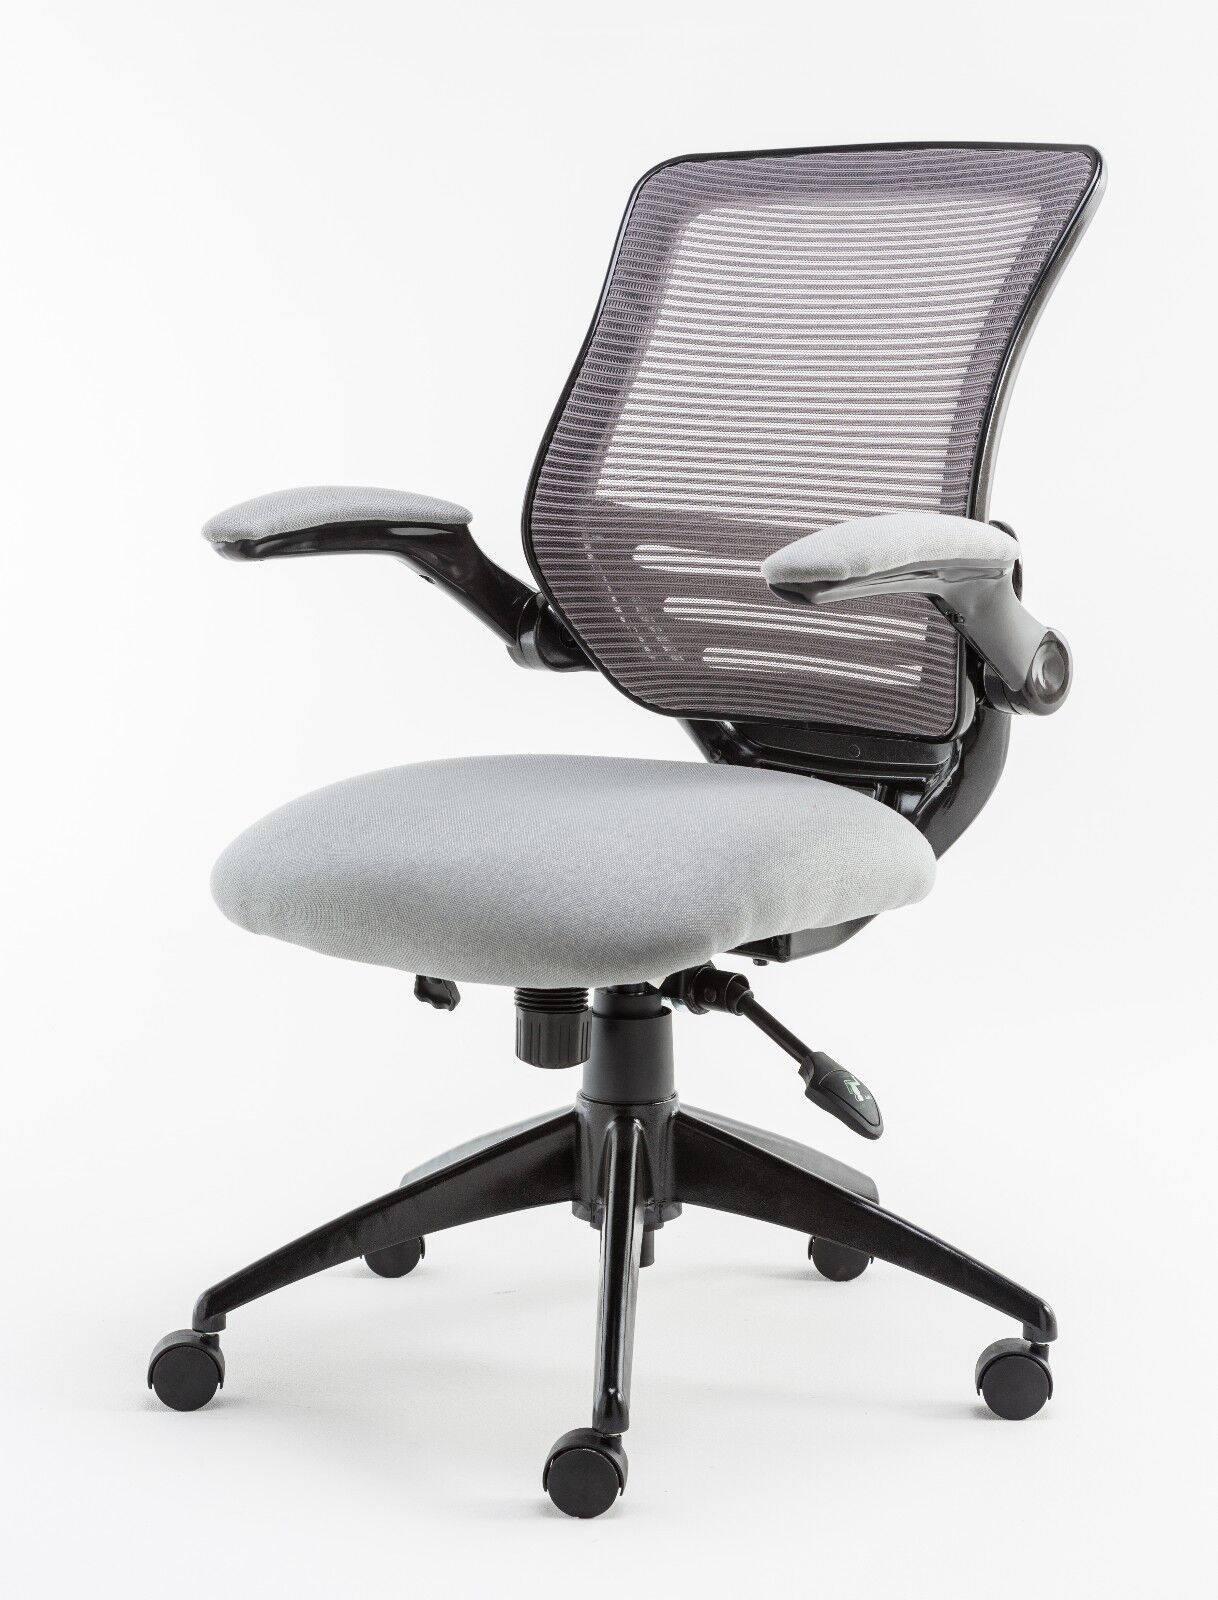 Image of: Stanford Grey Mesh Office Chair Operator Use Height Adjustable Tilt And Lift Ebay